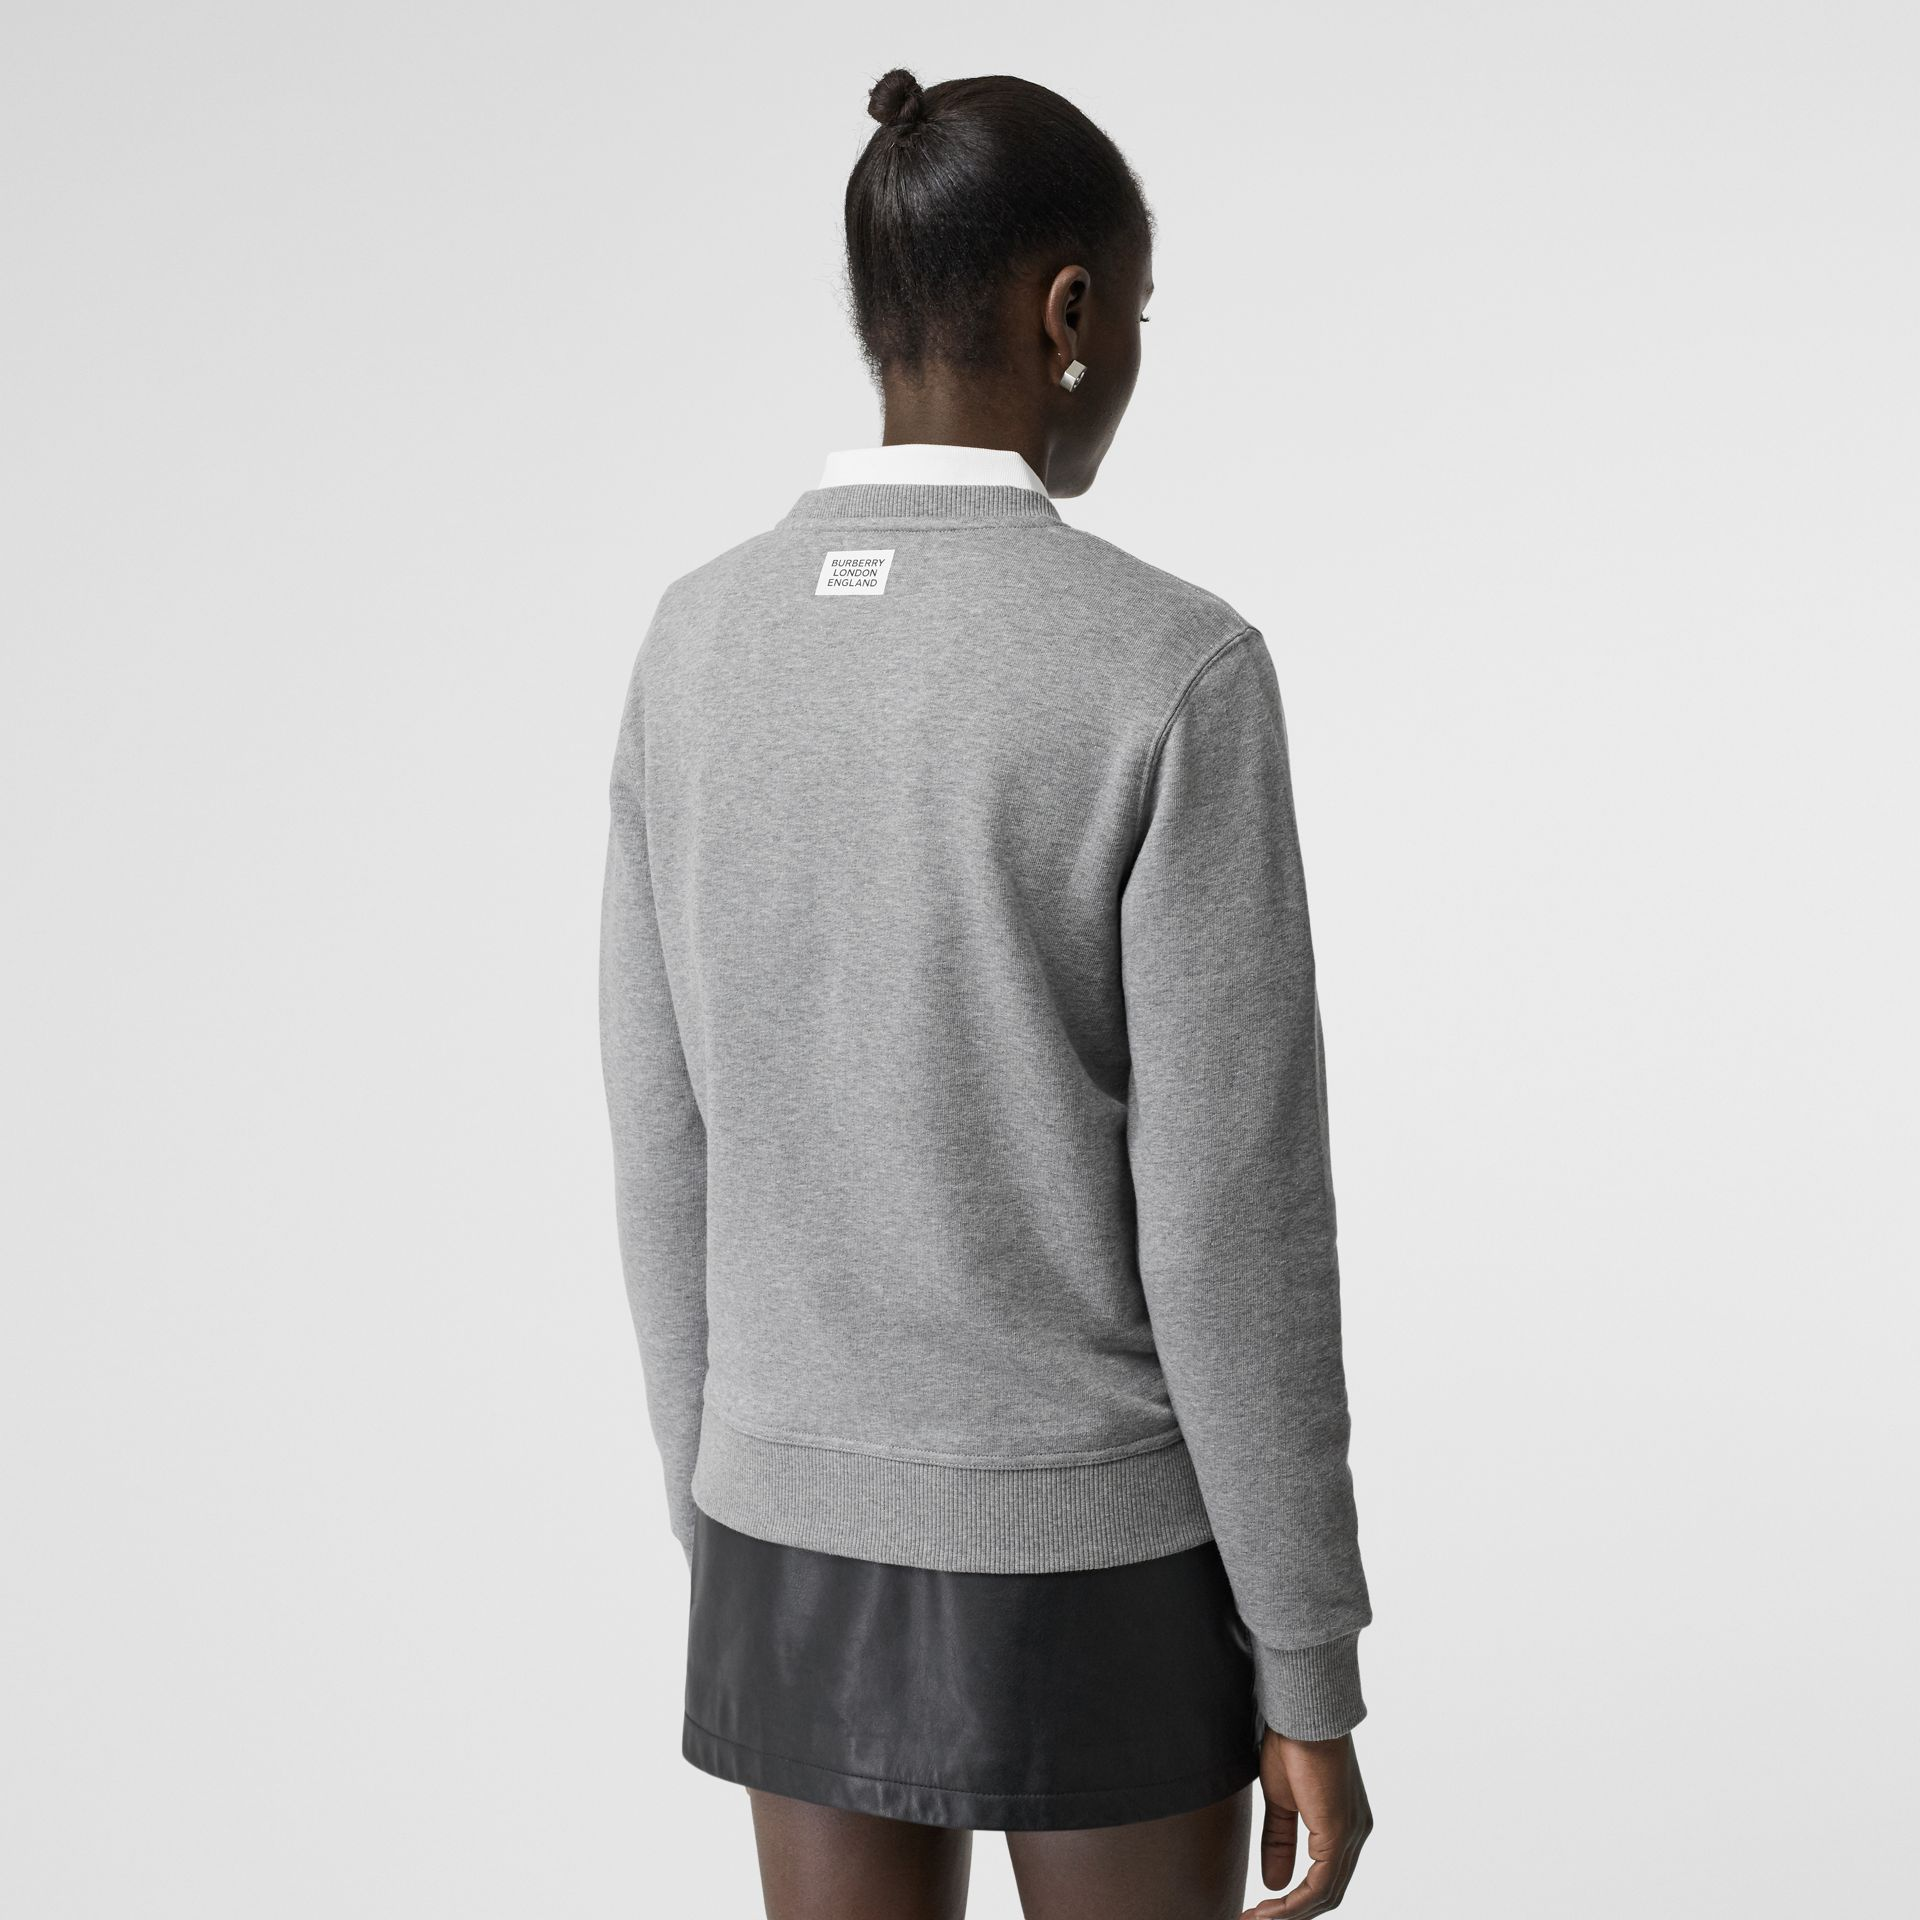 Quote Print Cotton Sweatshirt in Pale Grey Melange - Women | Burberry Hong Kong S.A.R - gallery image 2